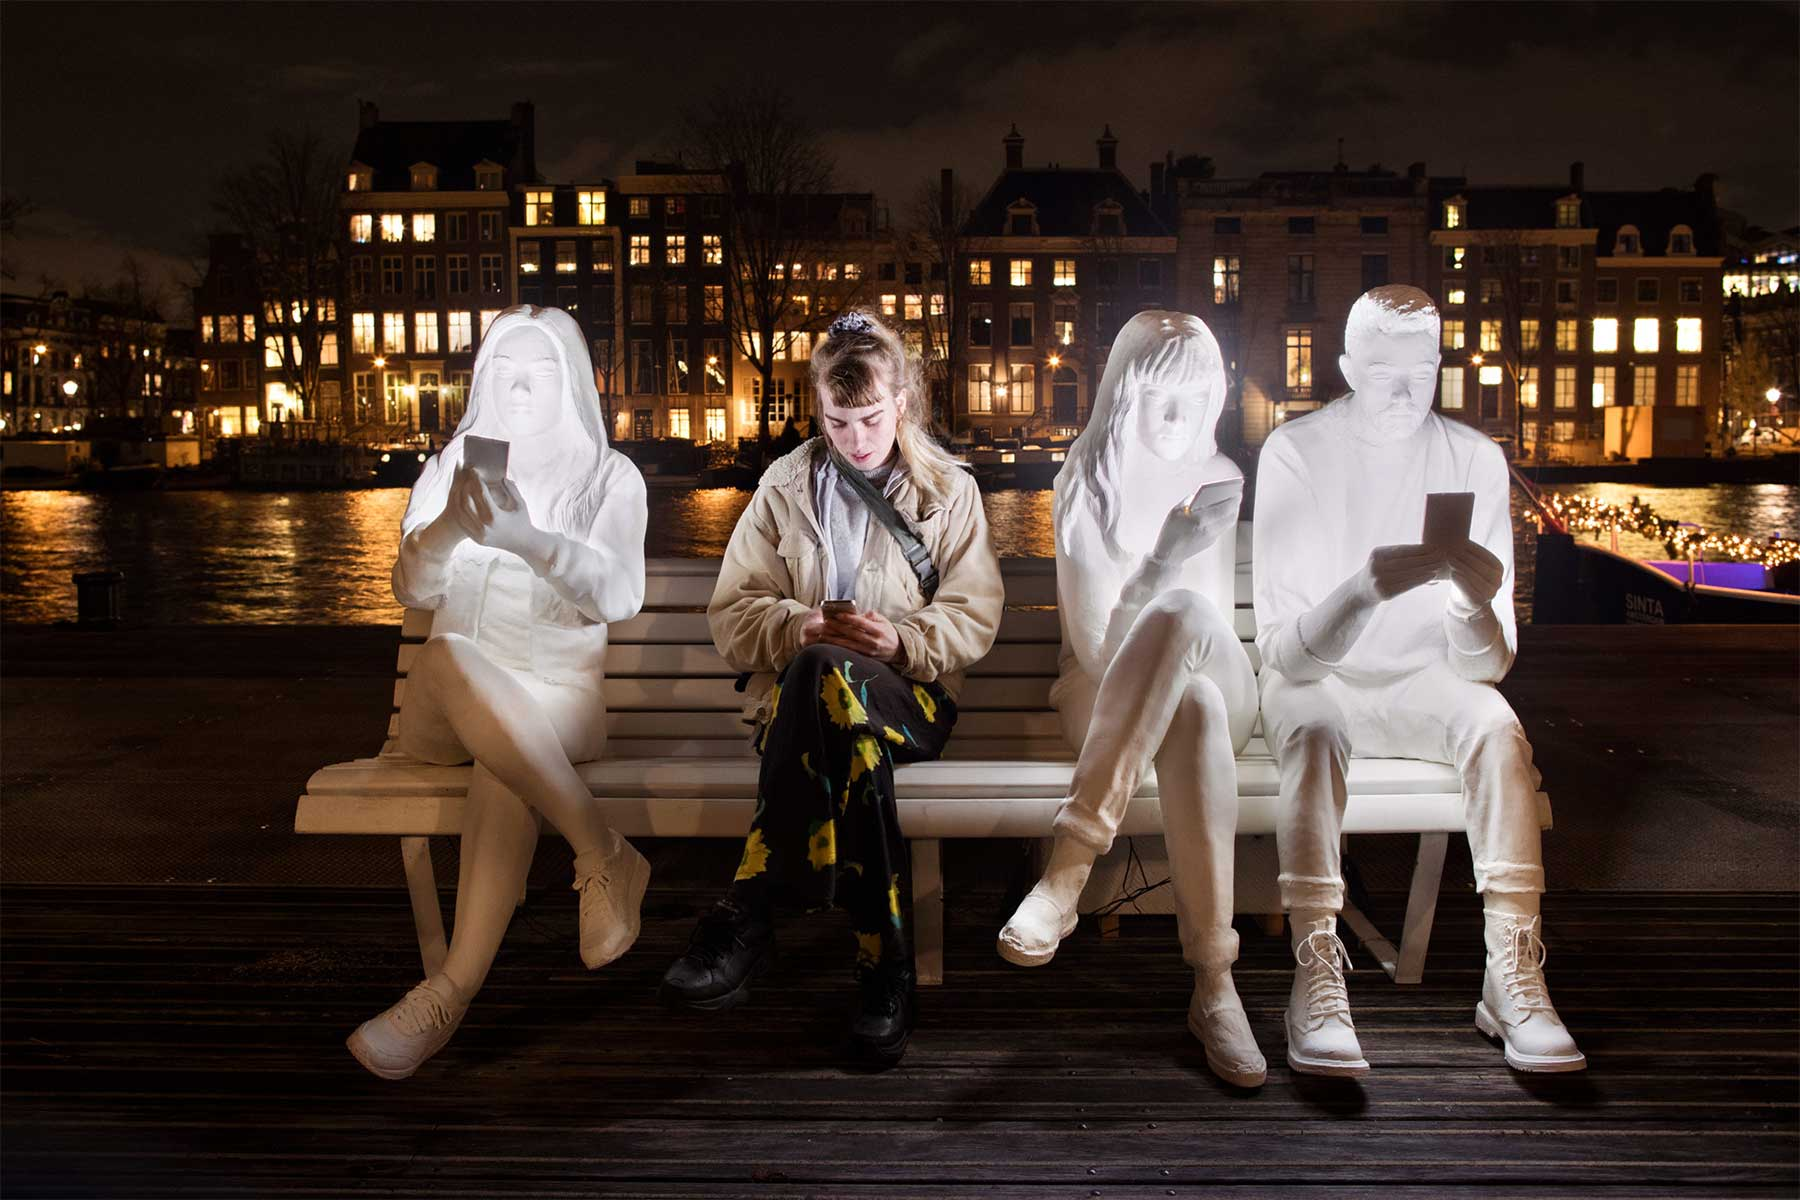 Die Highlights vom Amsterdam Light Festival 2018 amsterdam-light-festival-2018_02